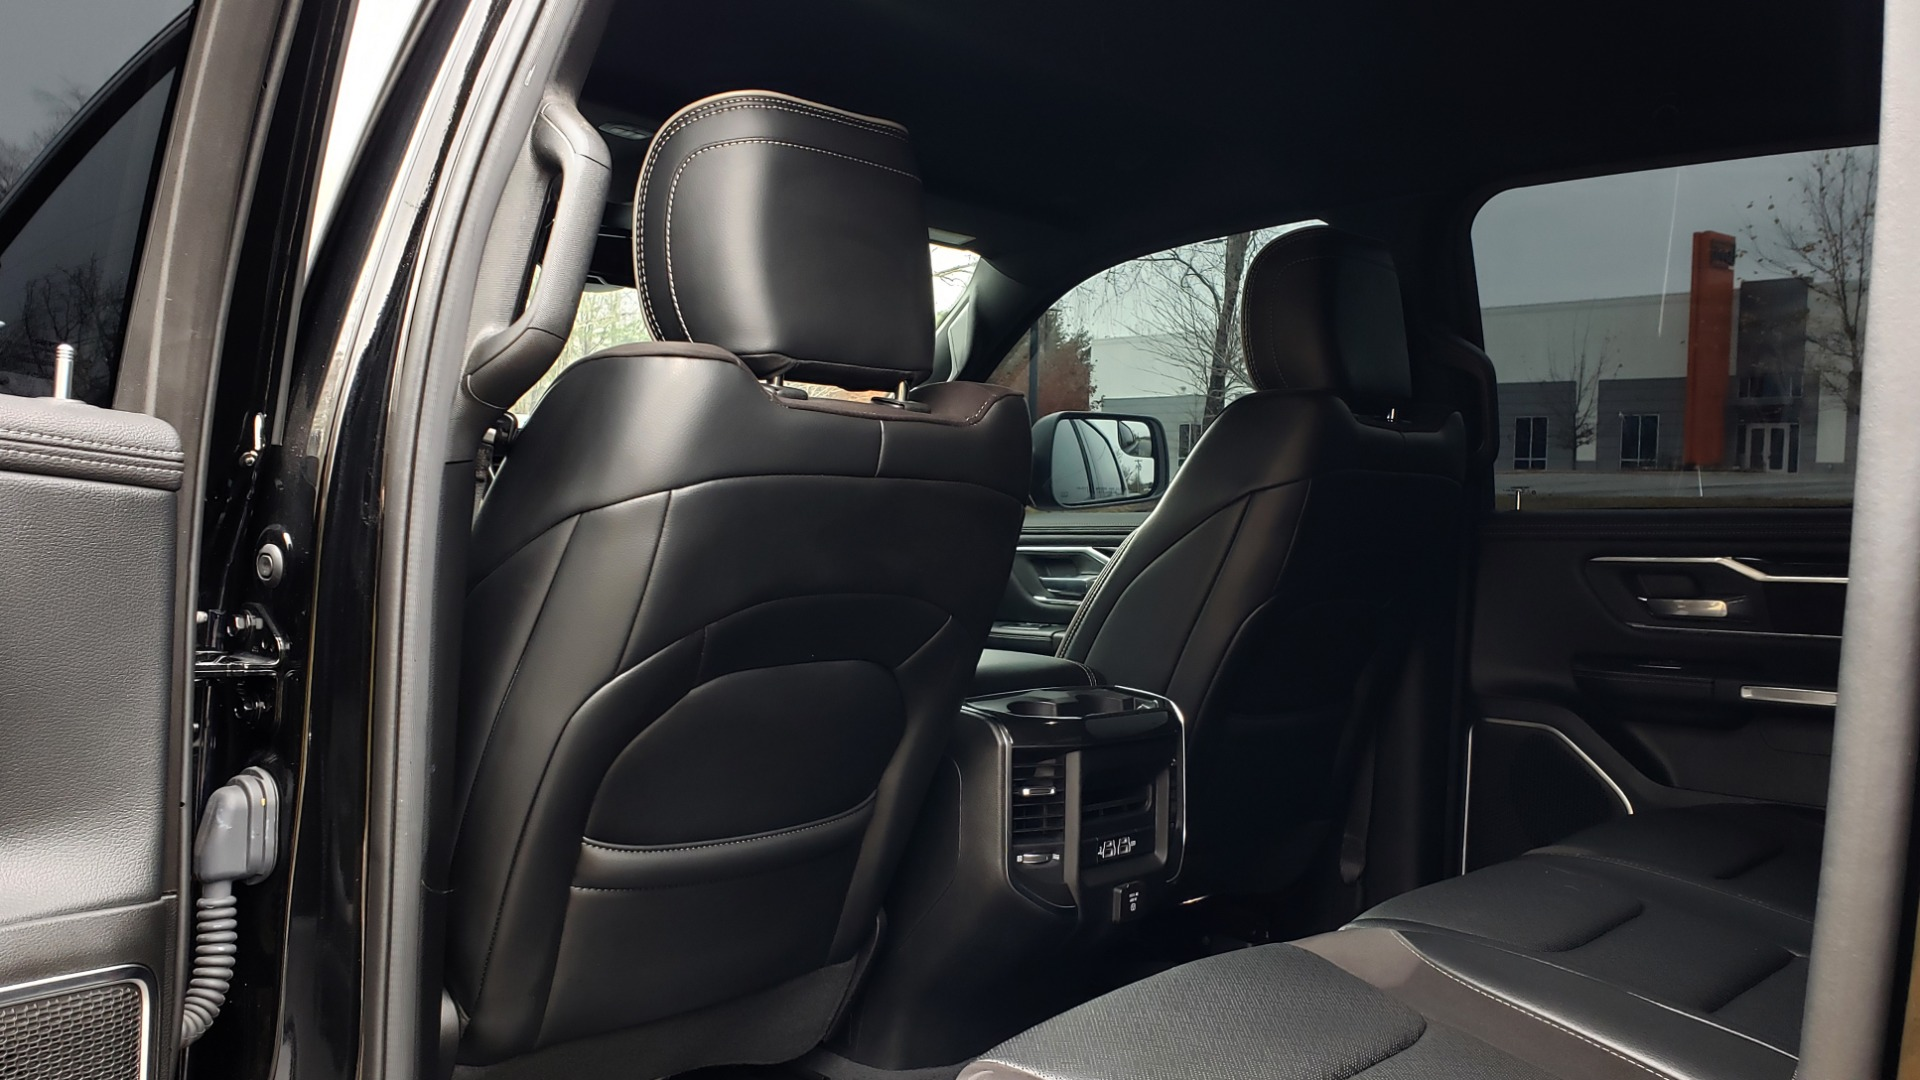 Used 2019 Ram 1500 LARAMIE SPORT / 2WD / 5.7L HEMI / NAV / BLIND SPOT / HTD STS / REARVIEW for sale Sold at Formula Imports in Charlotte NC 28227 76